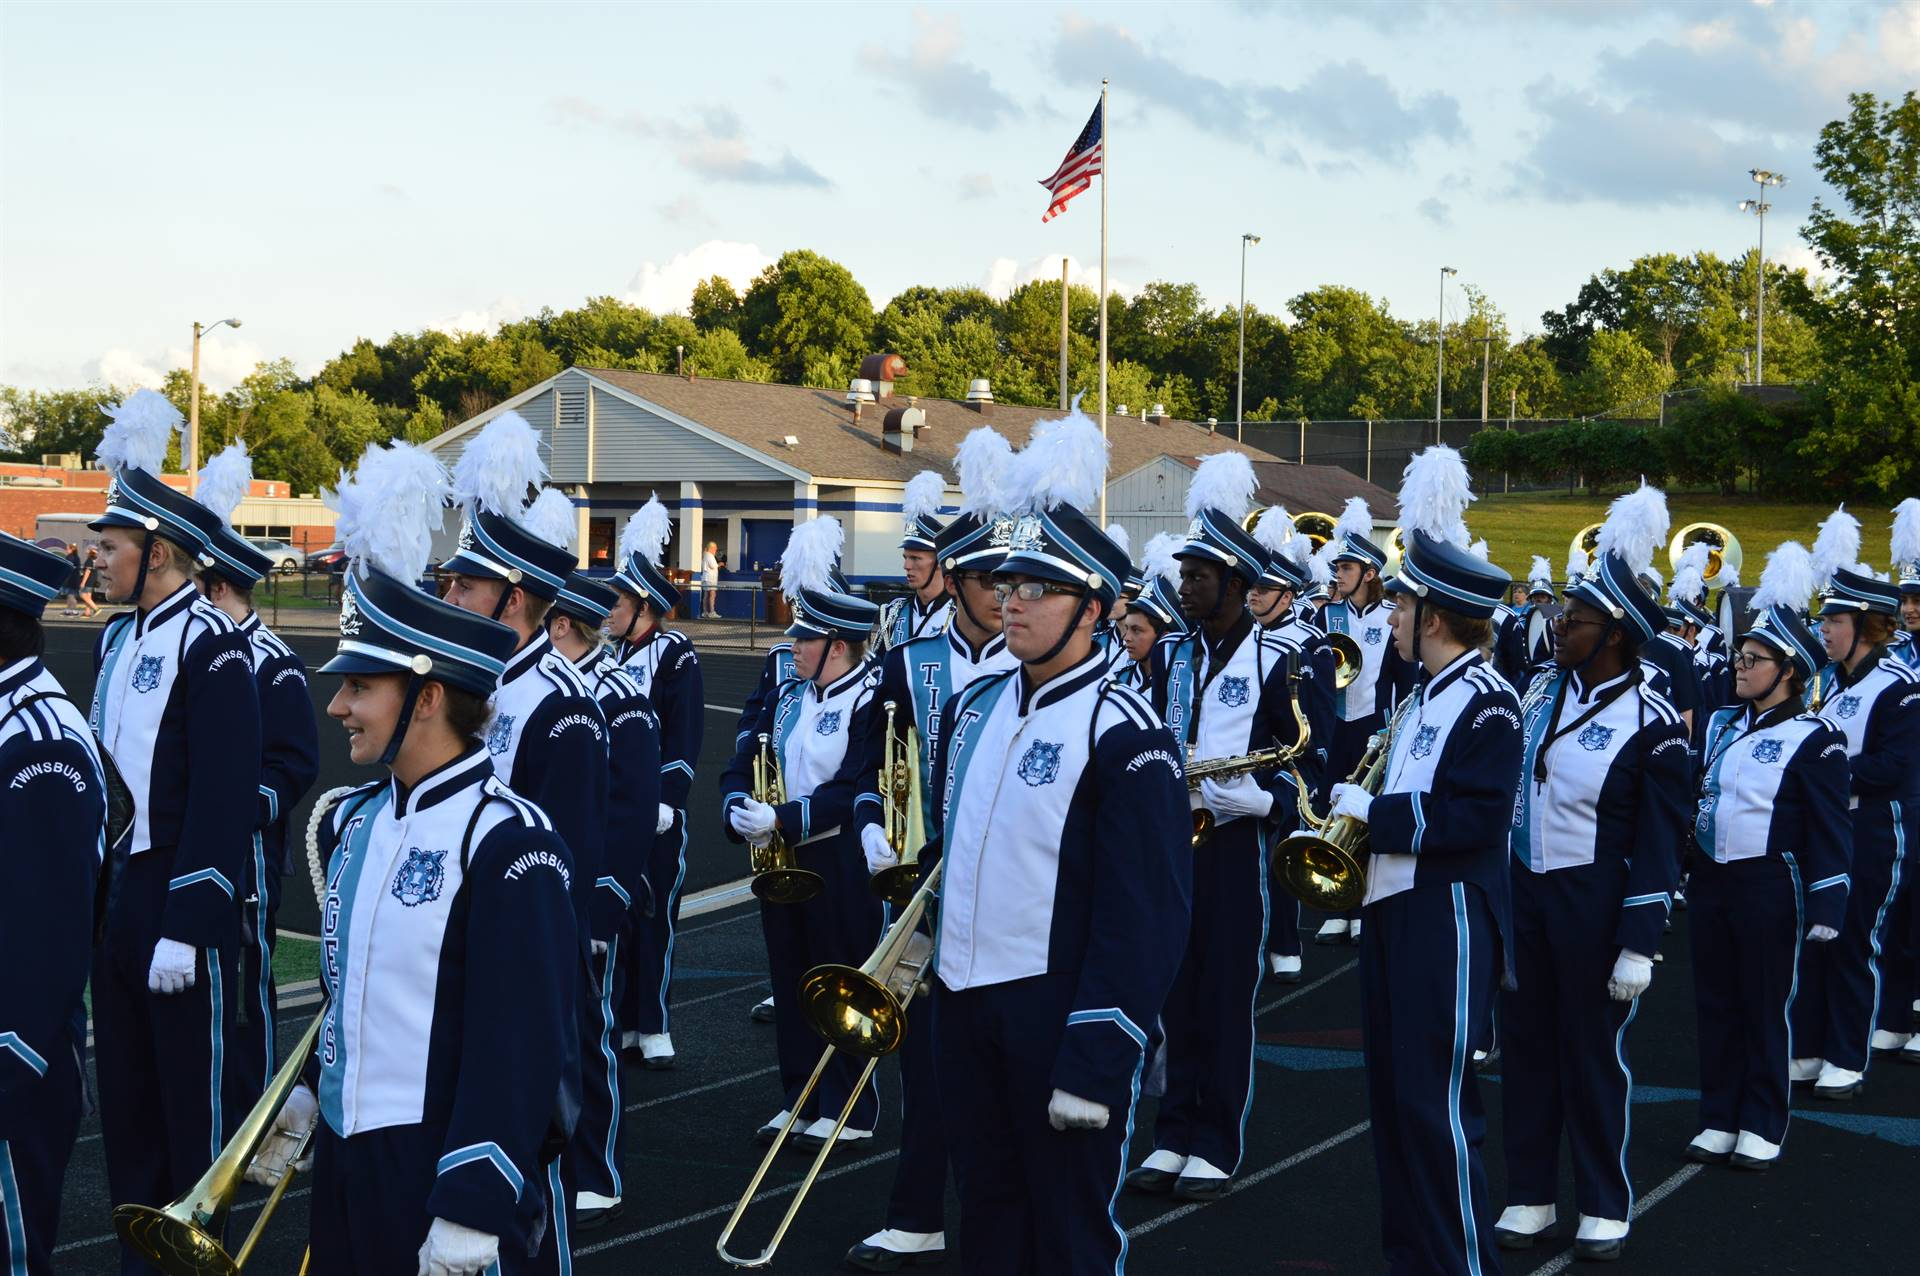 Band Students Marching